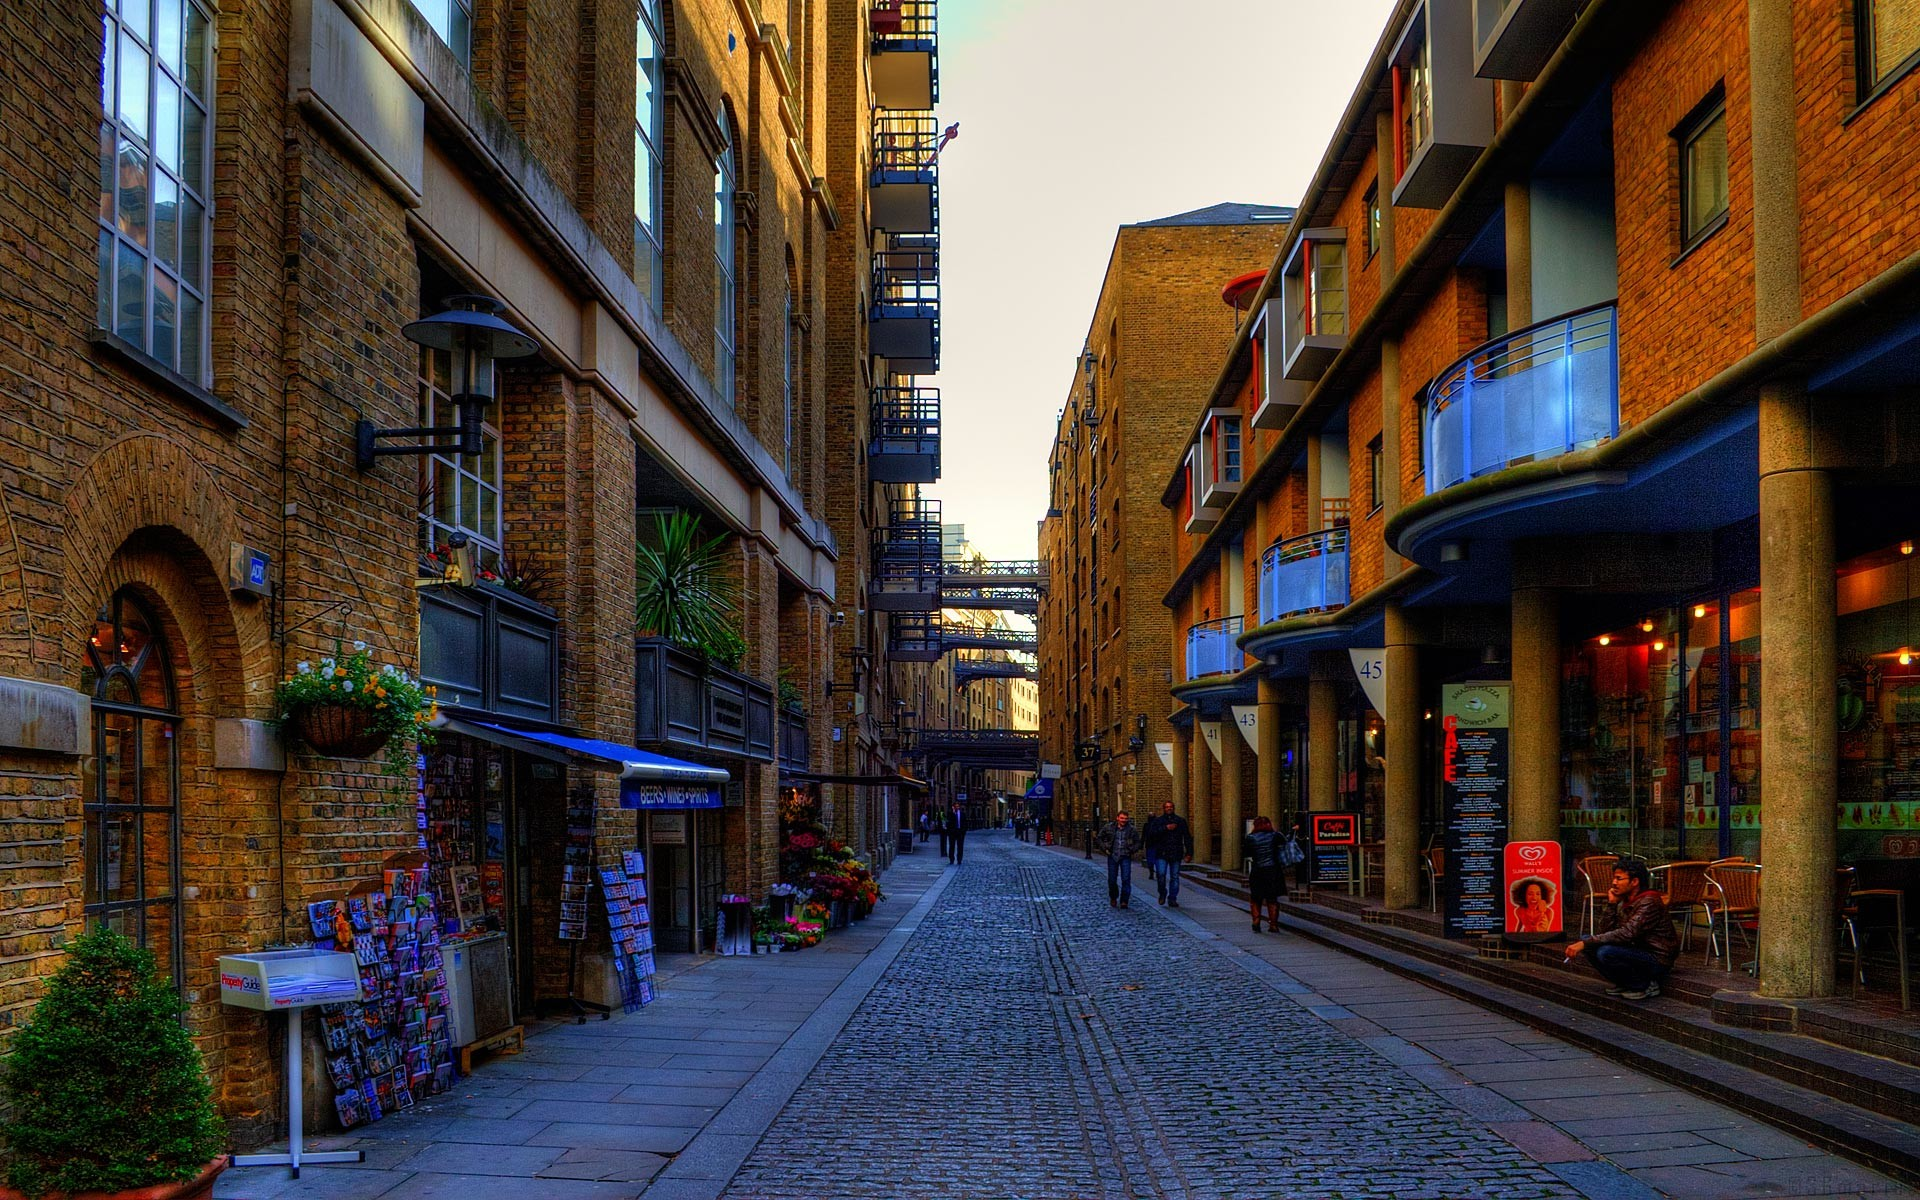 London Streets Wallpaper 72 Images